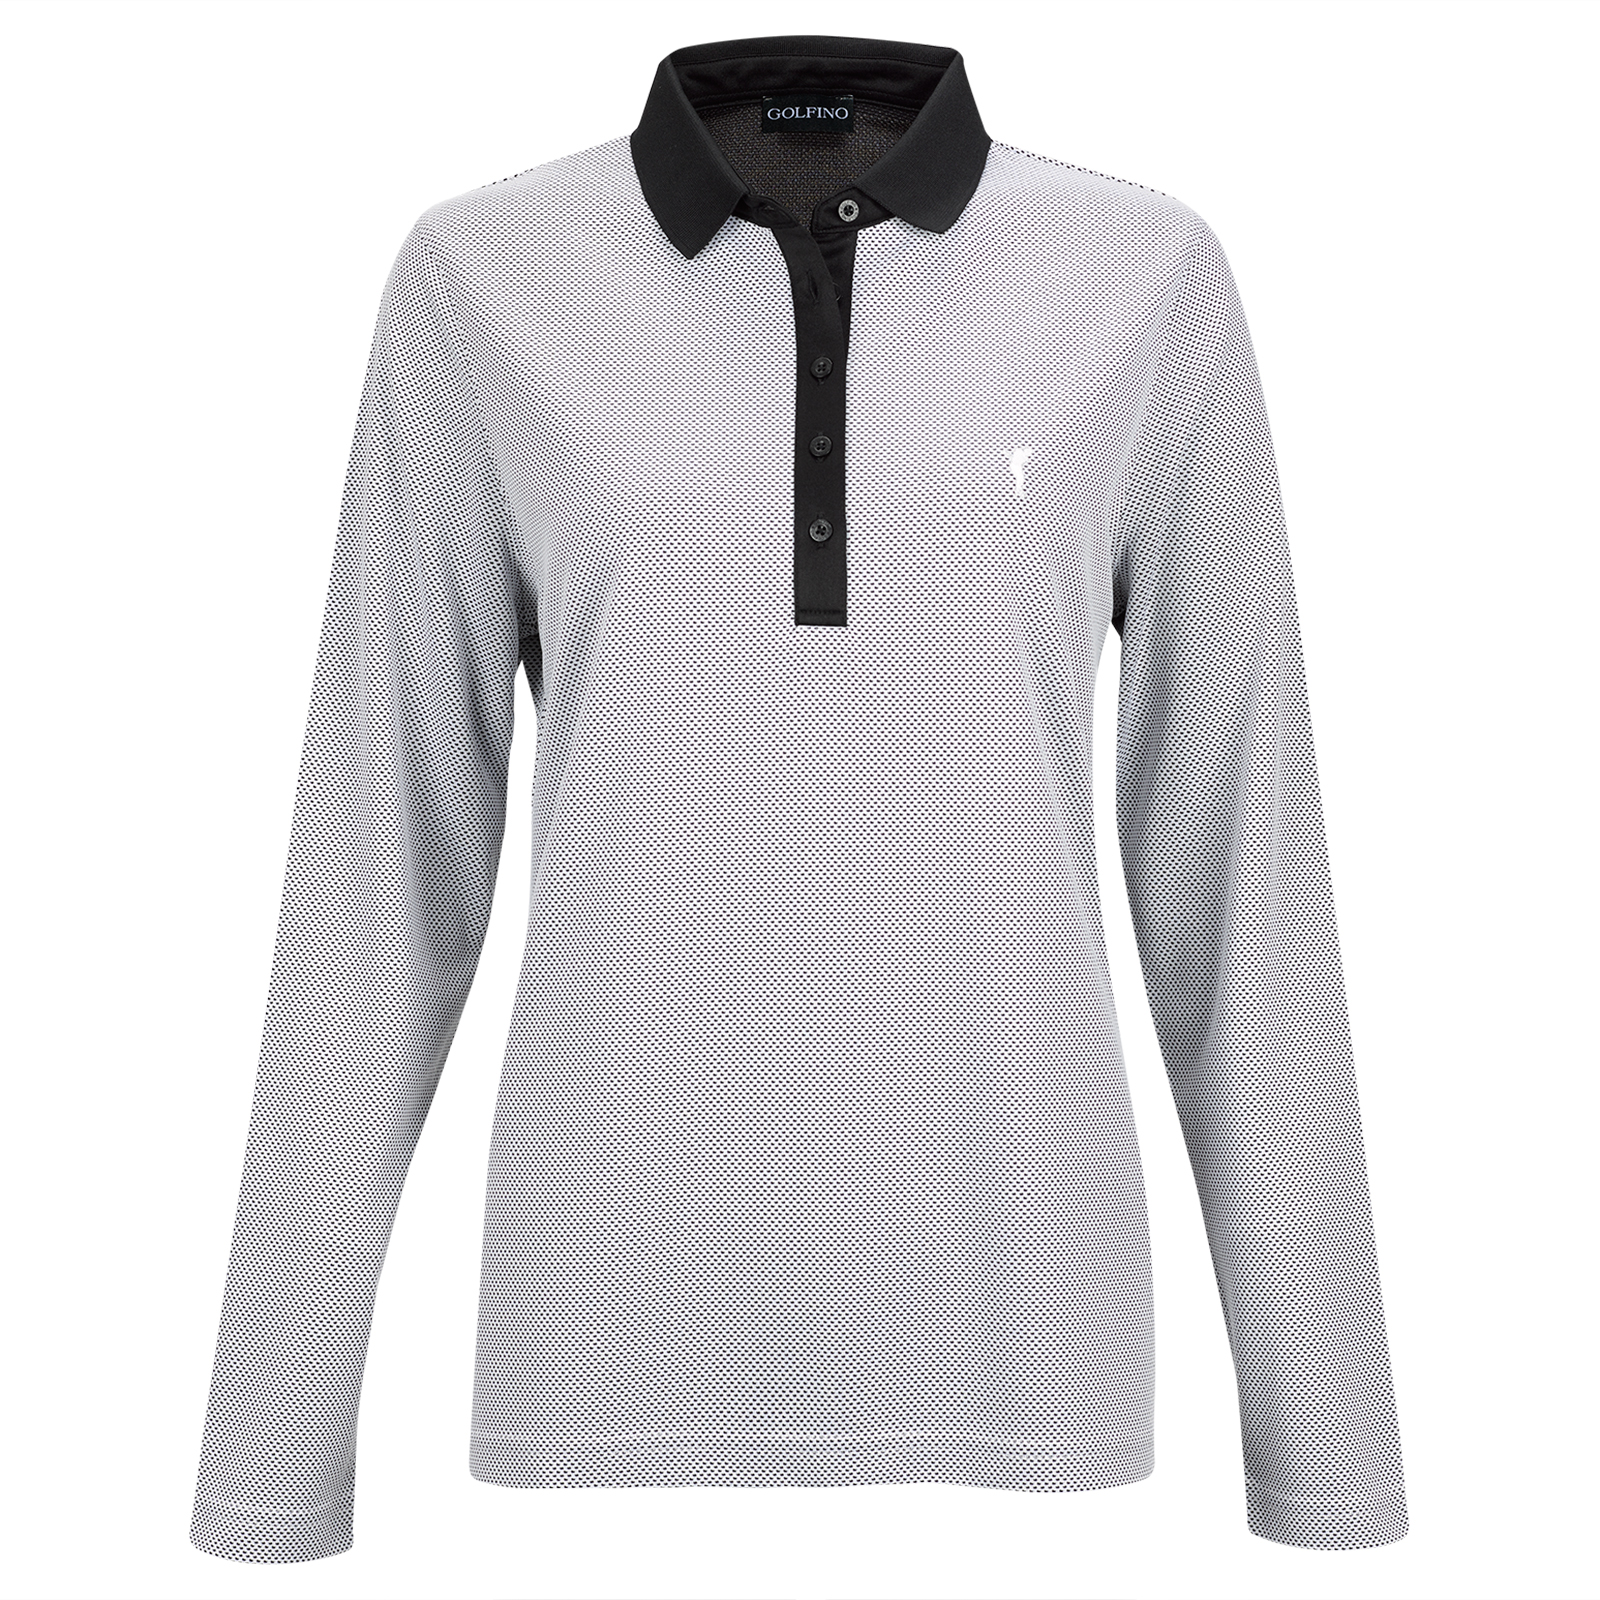 Techno Bubble Jaquard Damen Langarm Funktions-Golfpolo Quick Dry